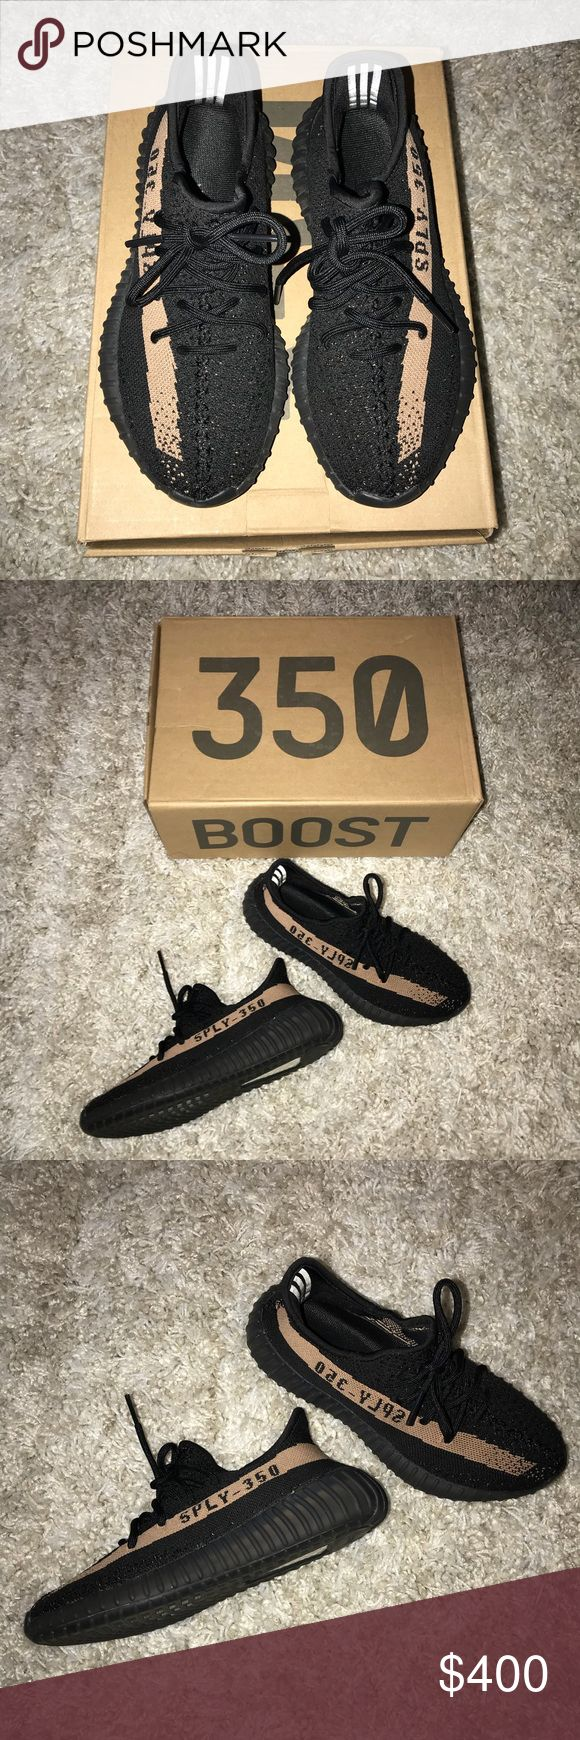 Addidas Yeezy Boost 350 V2 Copper Last sale fell through due to the purchaser. These are still available, I only have one pair. Check my other listing for more information. Yeezy Shoes Sneakers